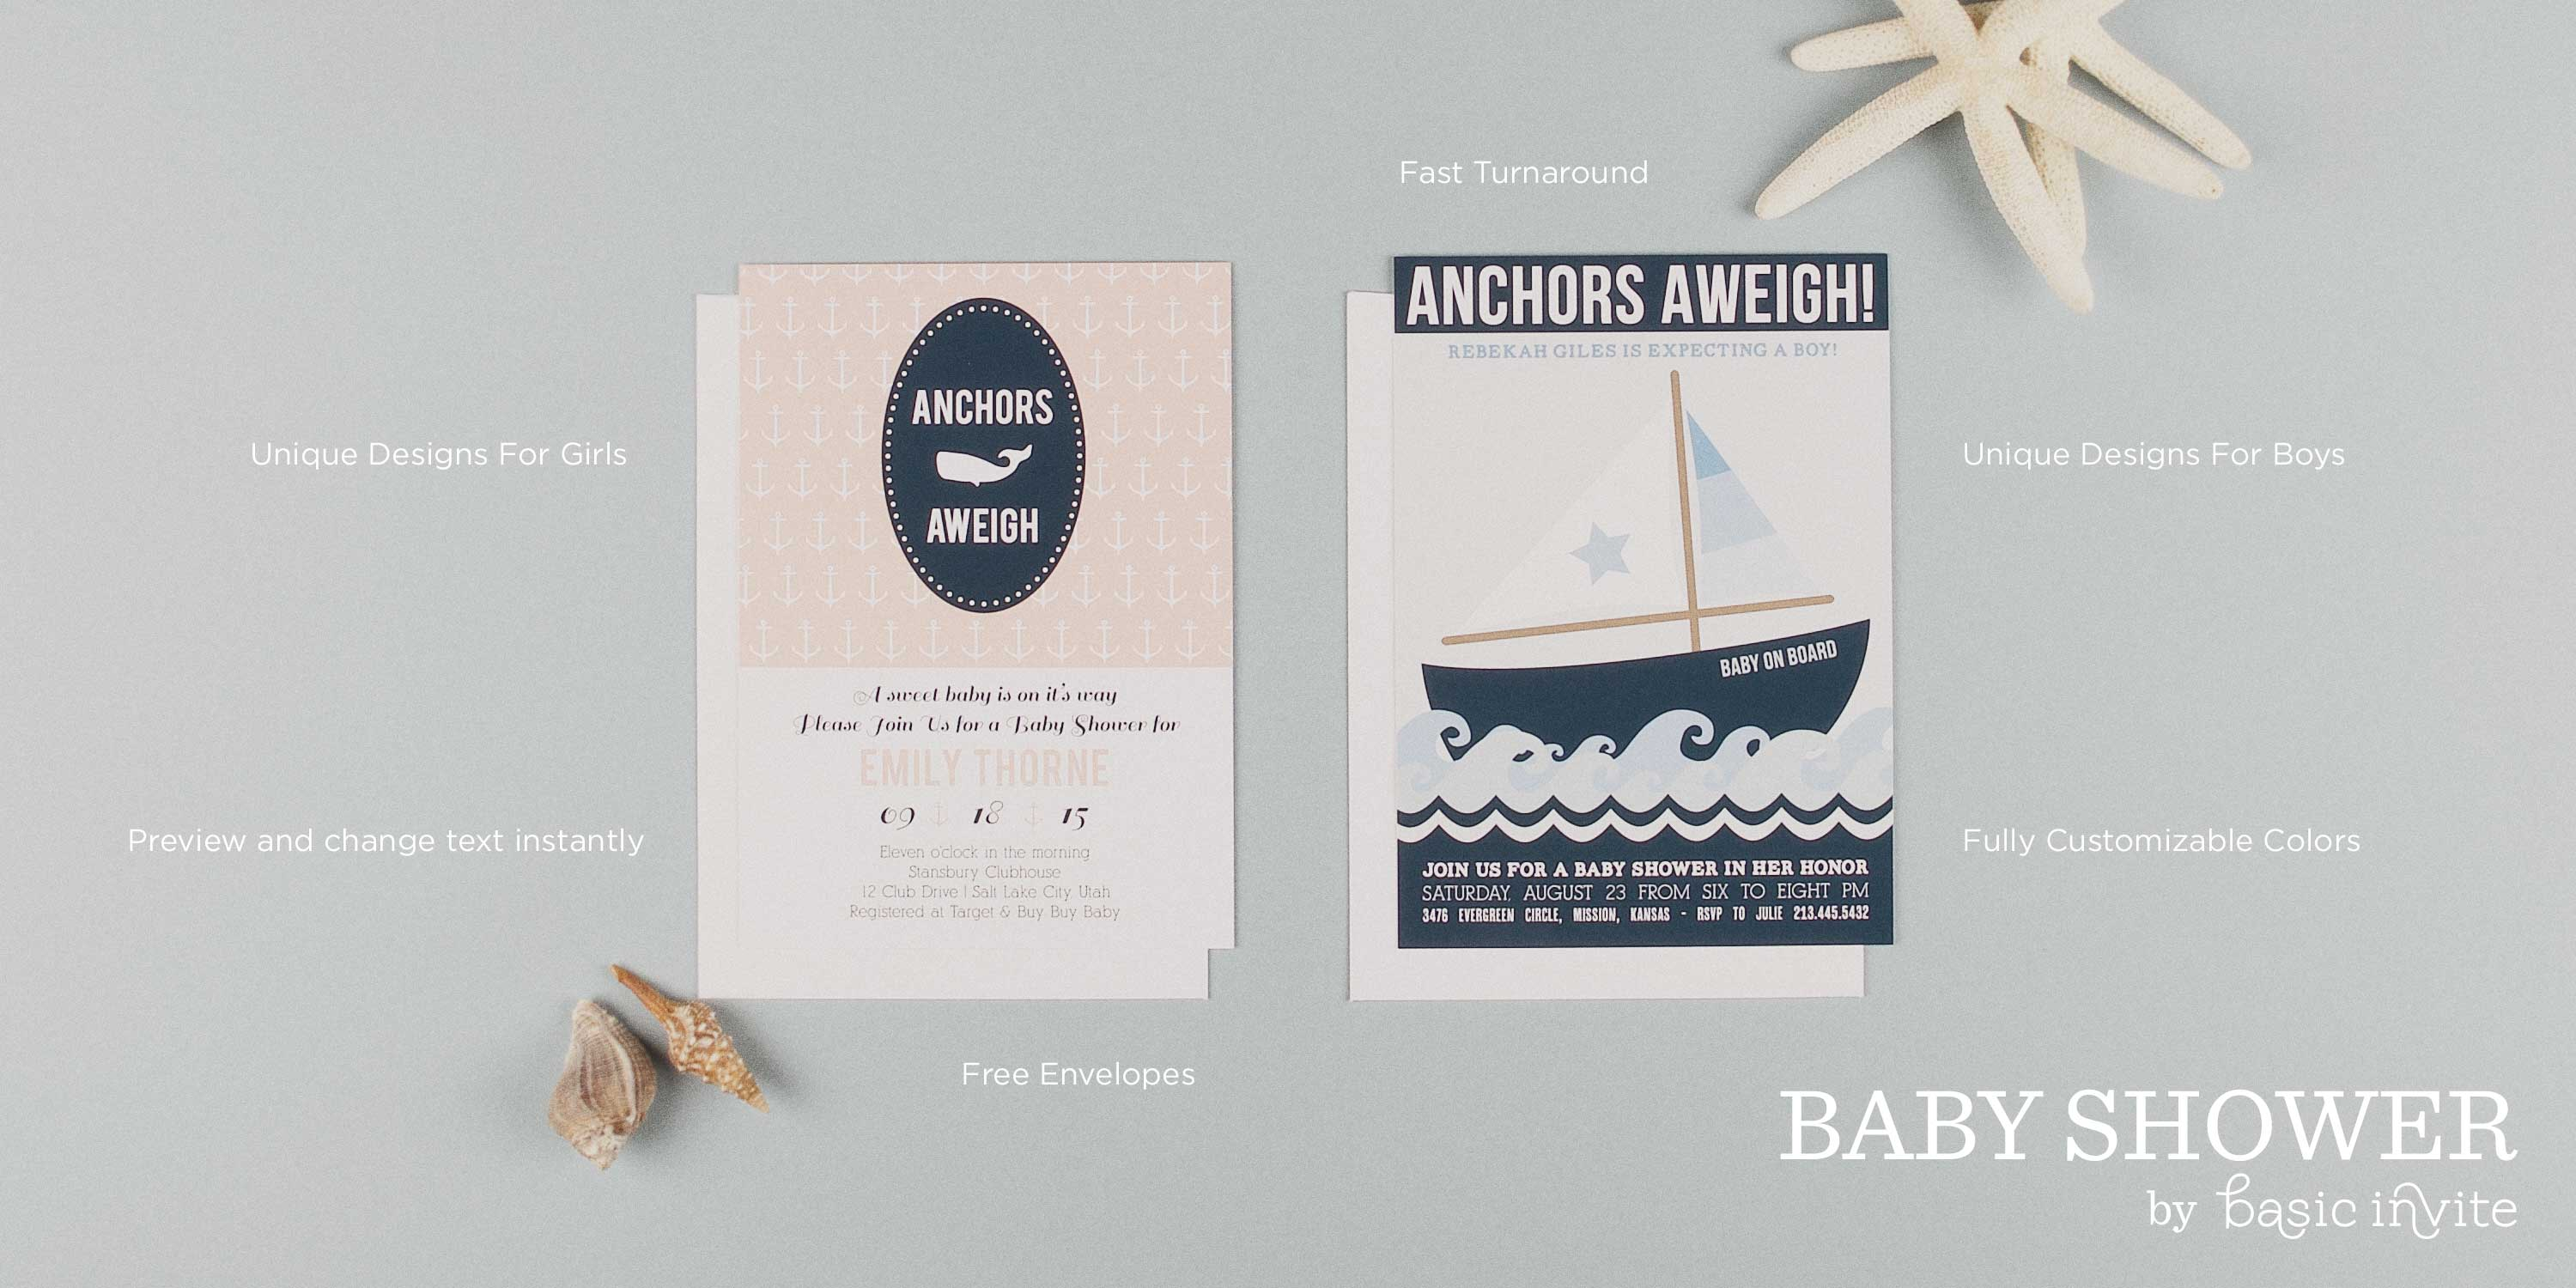 Basic Invite Wedding Invitations: Invitations, Announcements, And Photo Cards